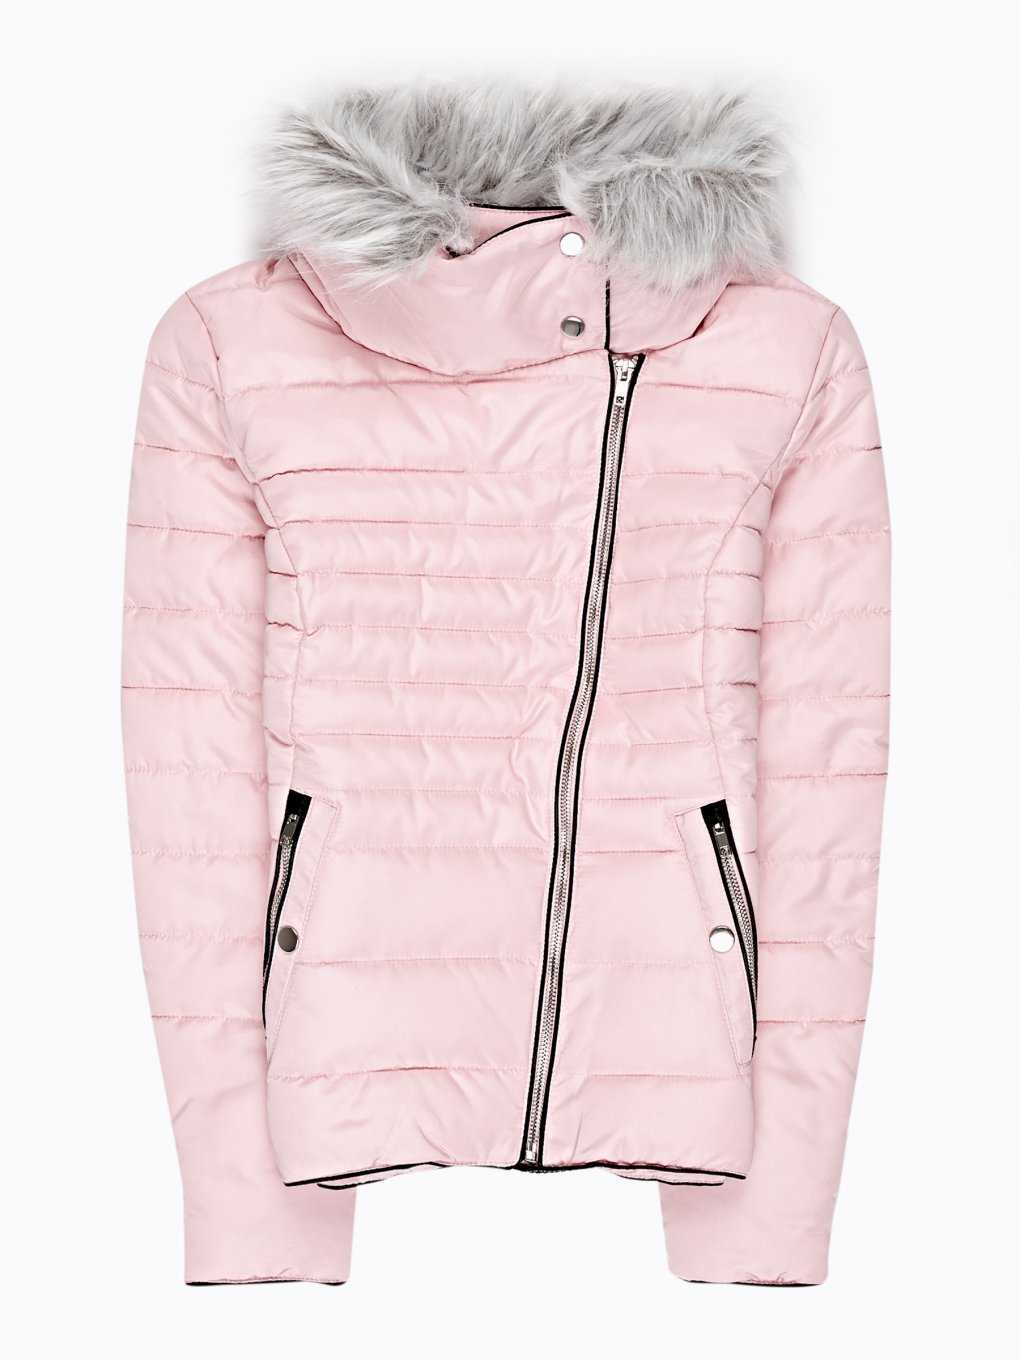 Quilted padded jacket with fur collar